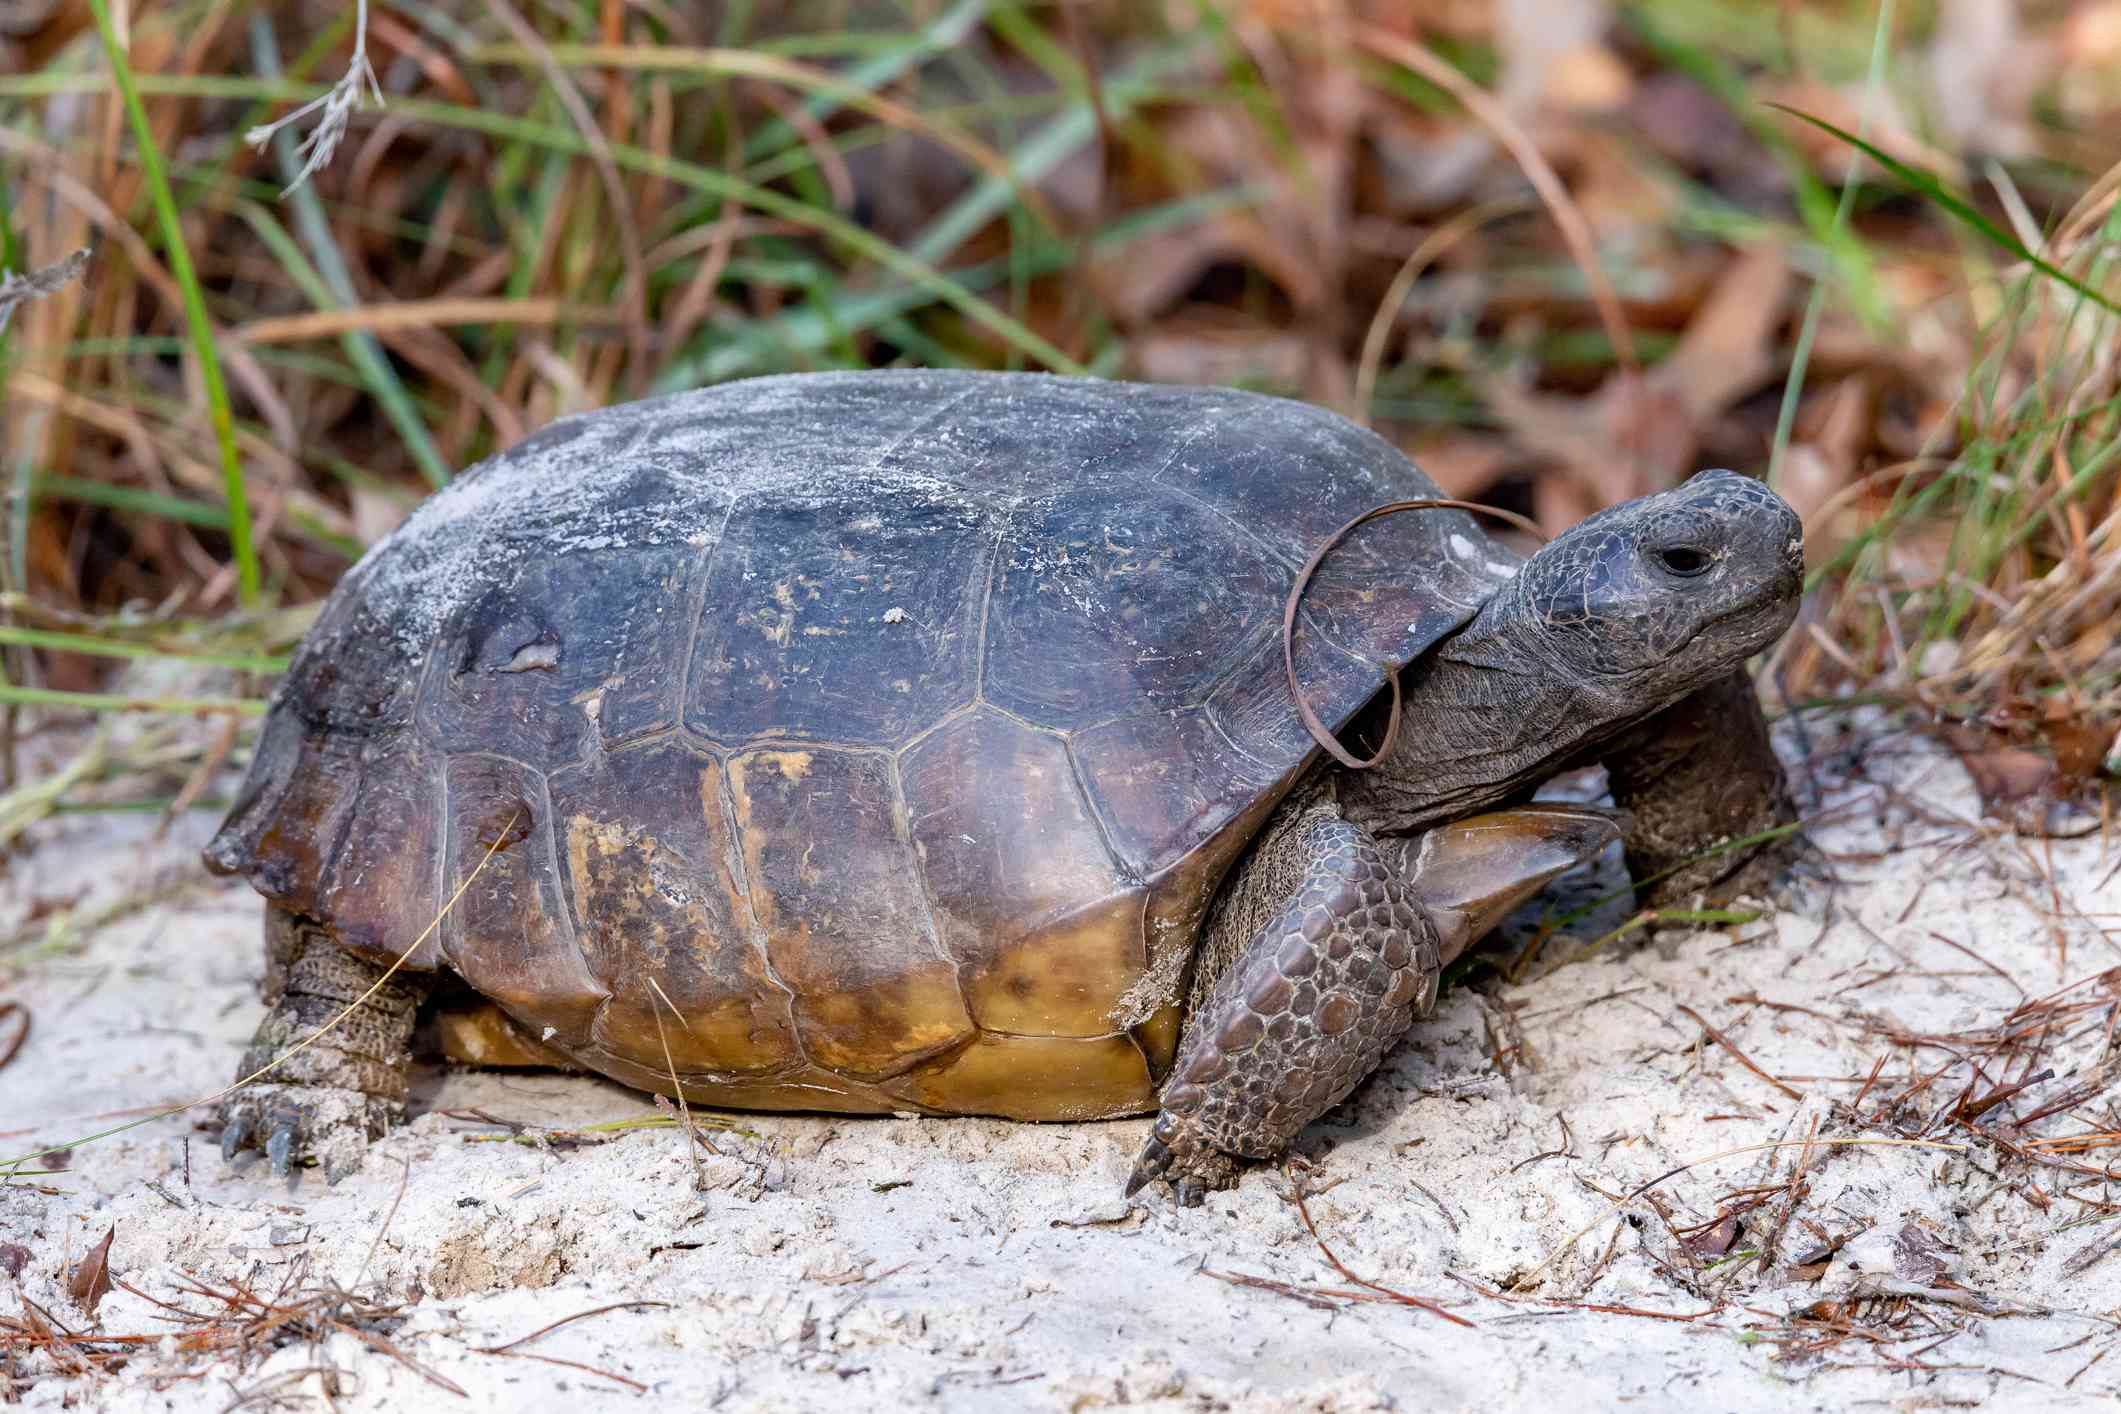 a Gopher tortoise with its head outstretched sitting on white sand near green plants